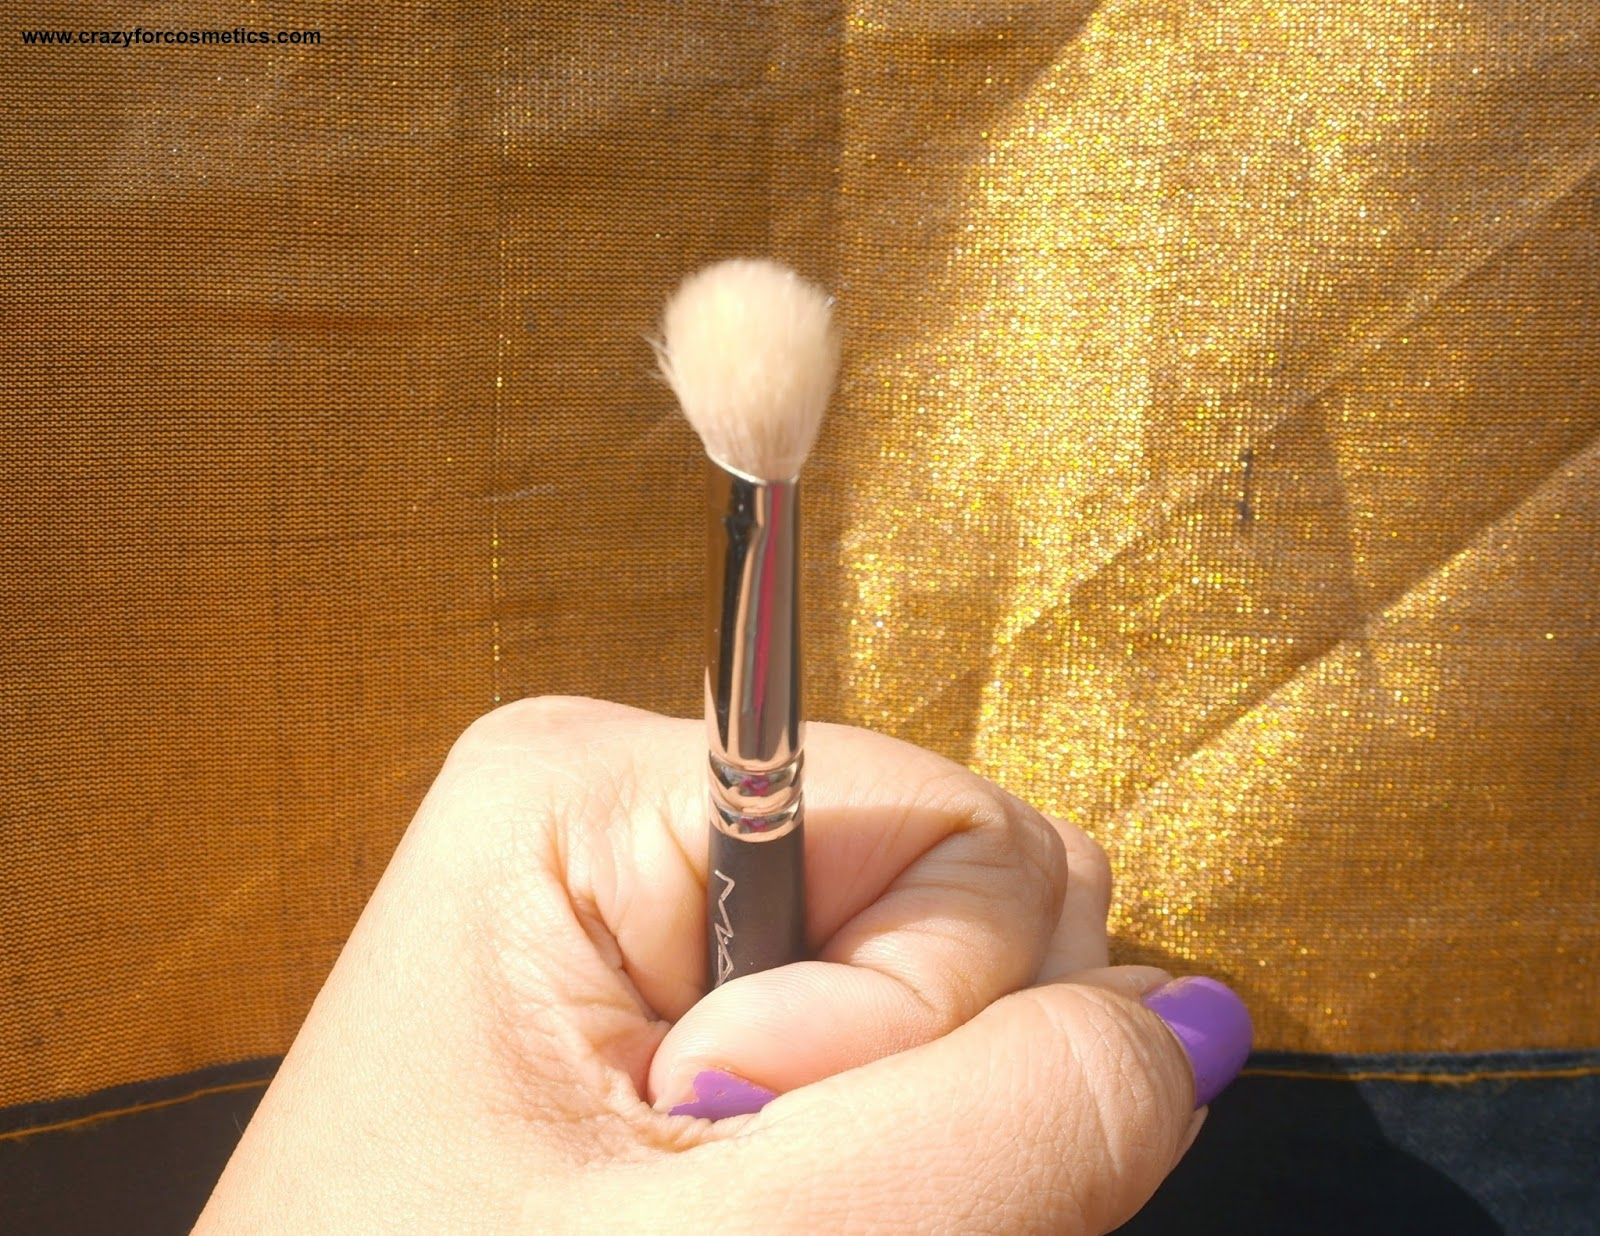 MAC 217 brush bristles